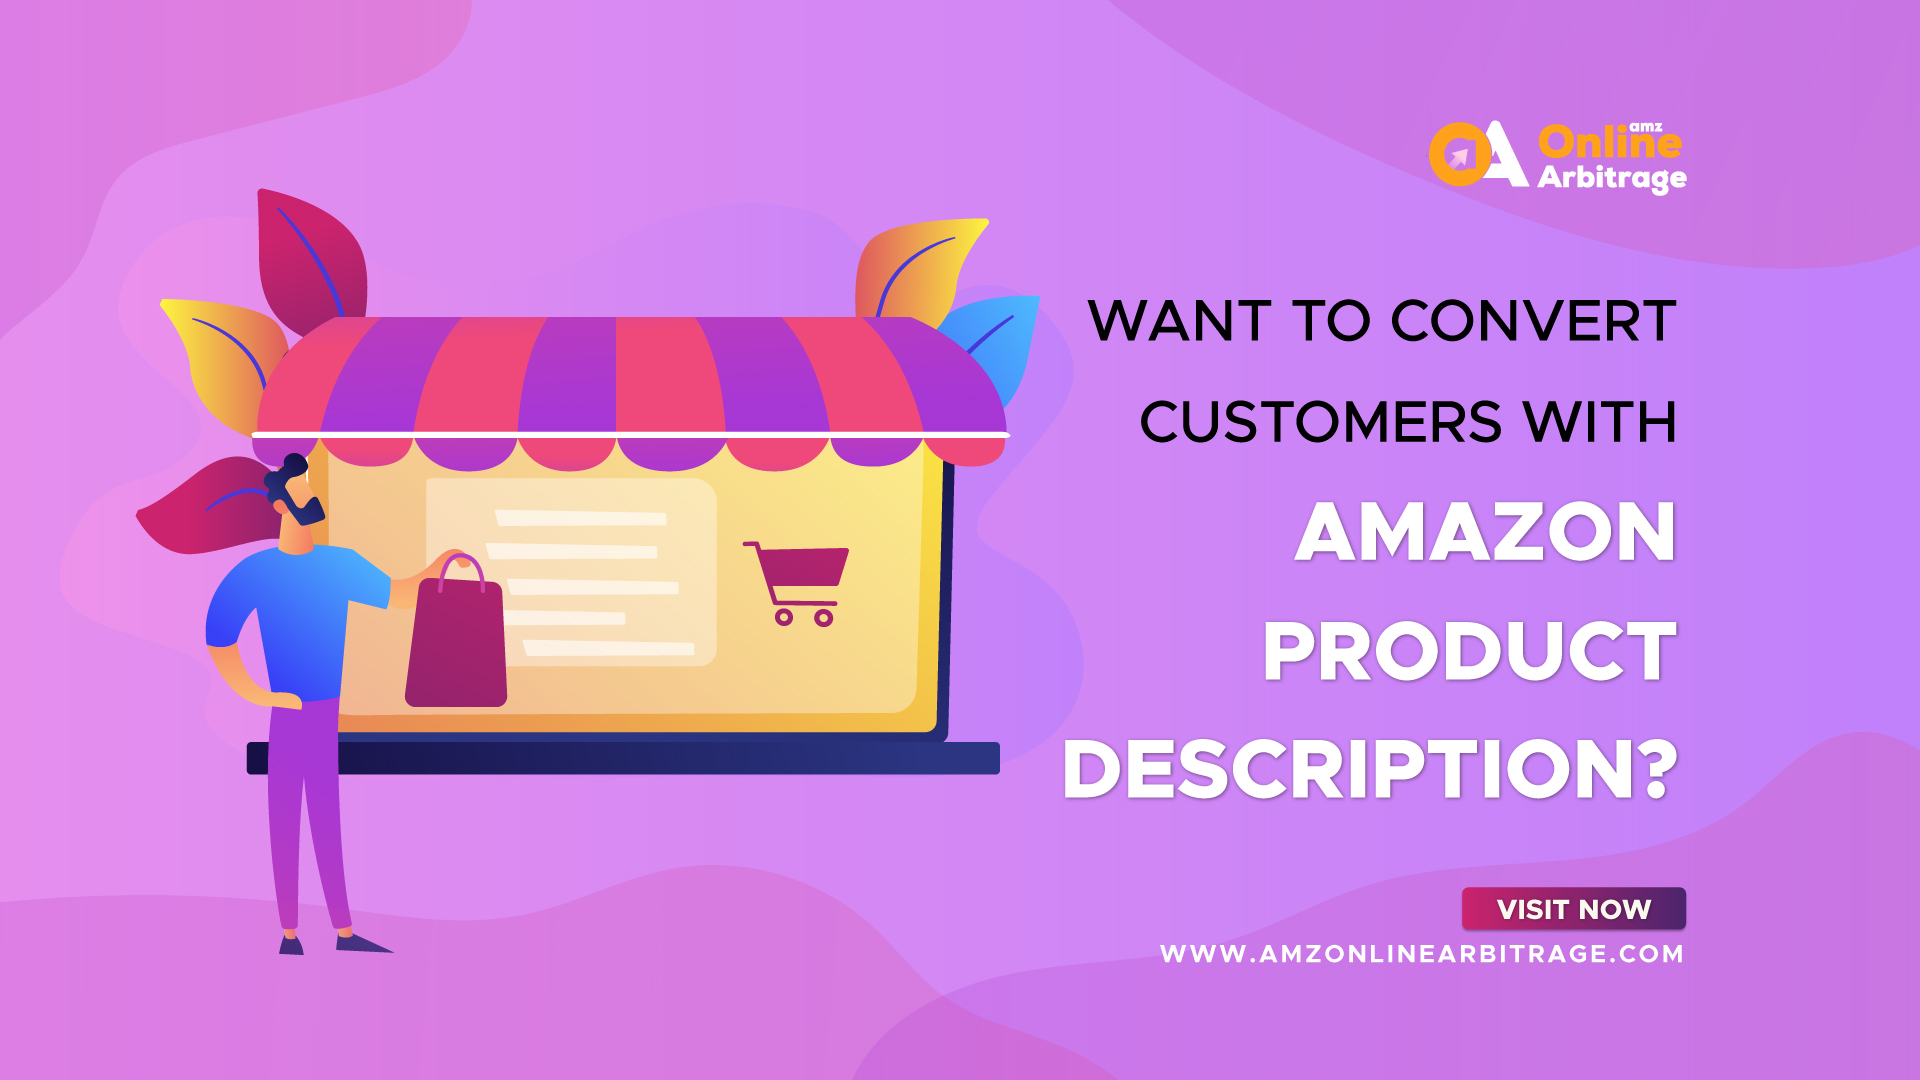 WANT TO CONVERT CUSTOMERS WITH AMAZON PRODUCT DESCRIPTION?